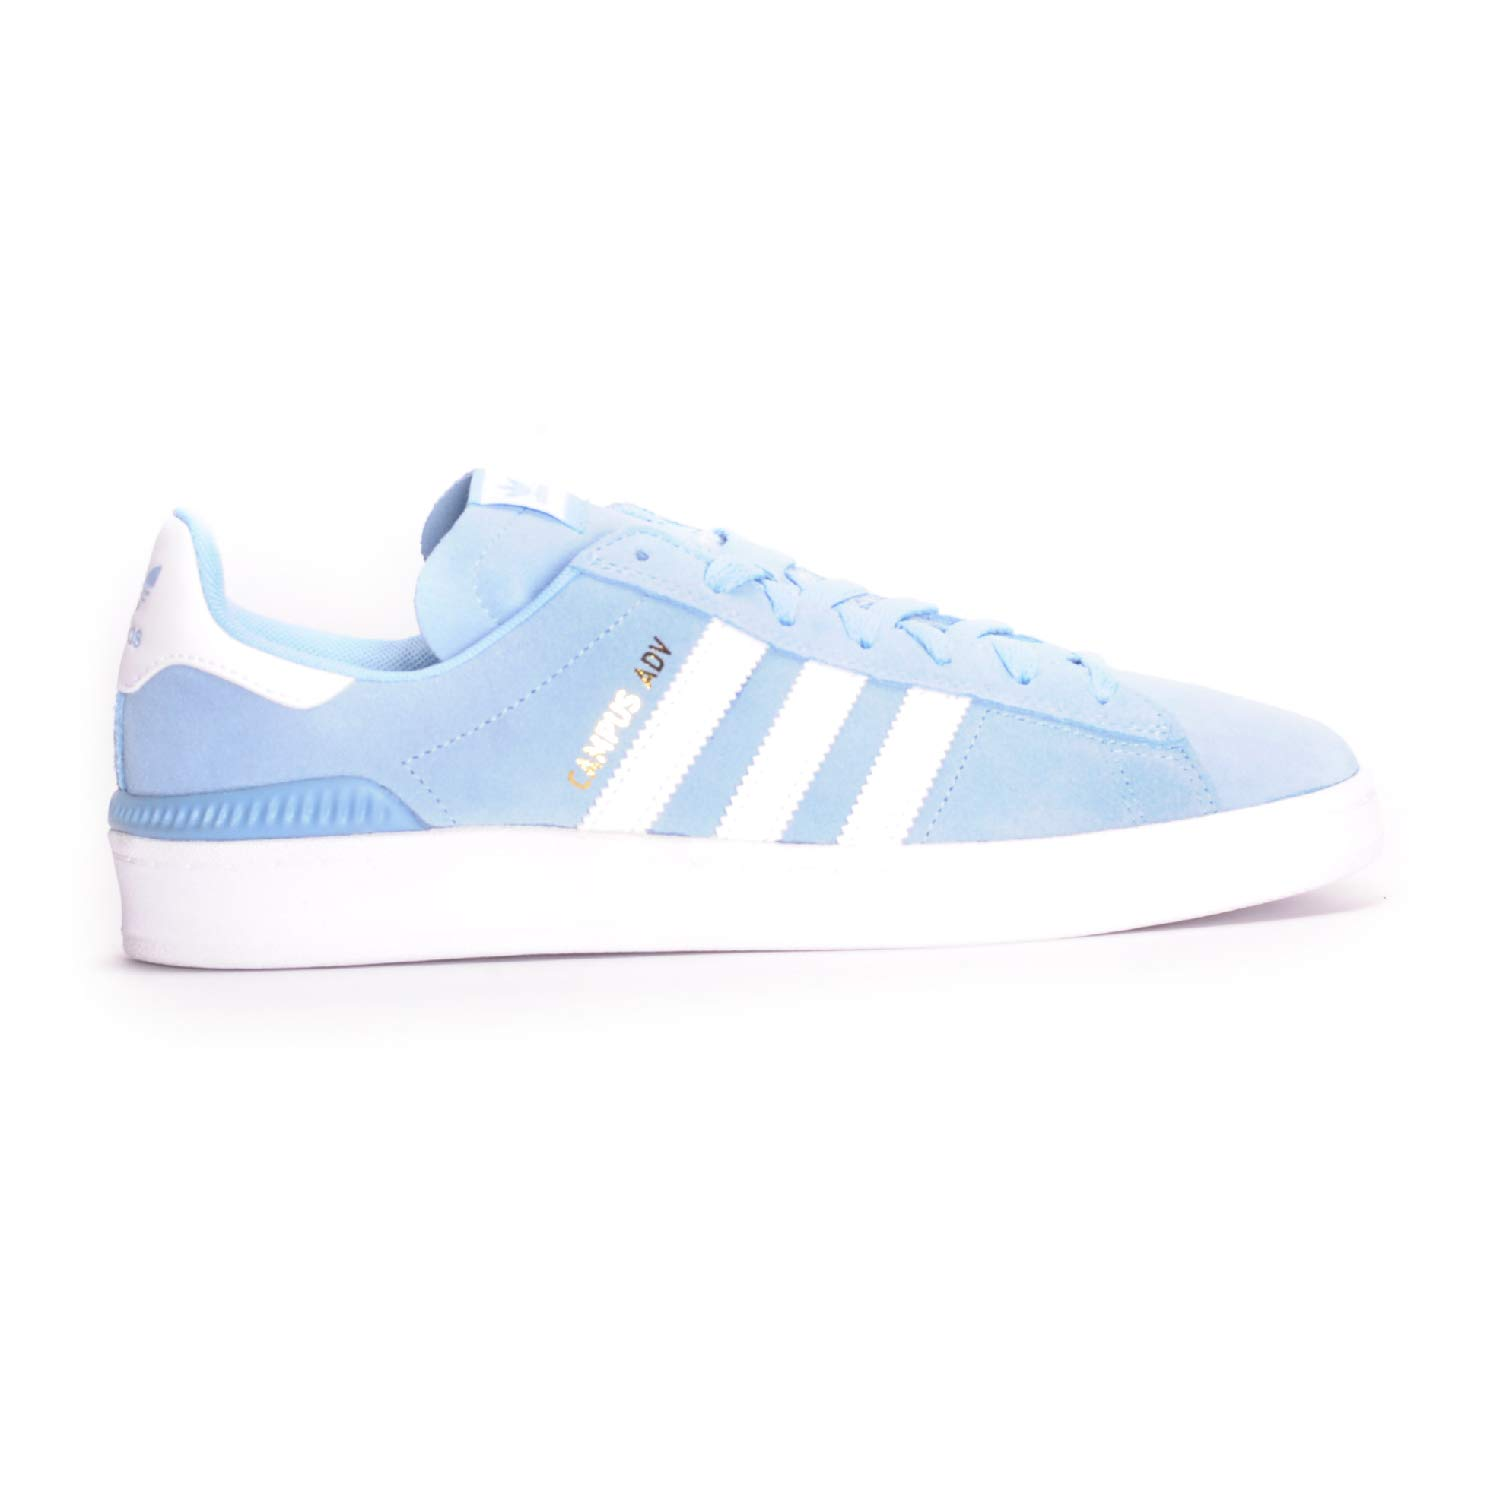 wholesale dealer 796c3 973a6 Amazon.com   adidas Skateboarding Men s Campus ADV   Skateboarding